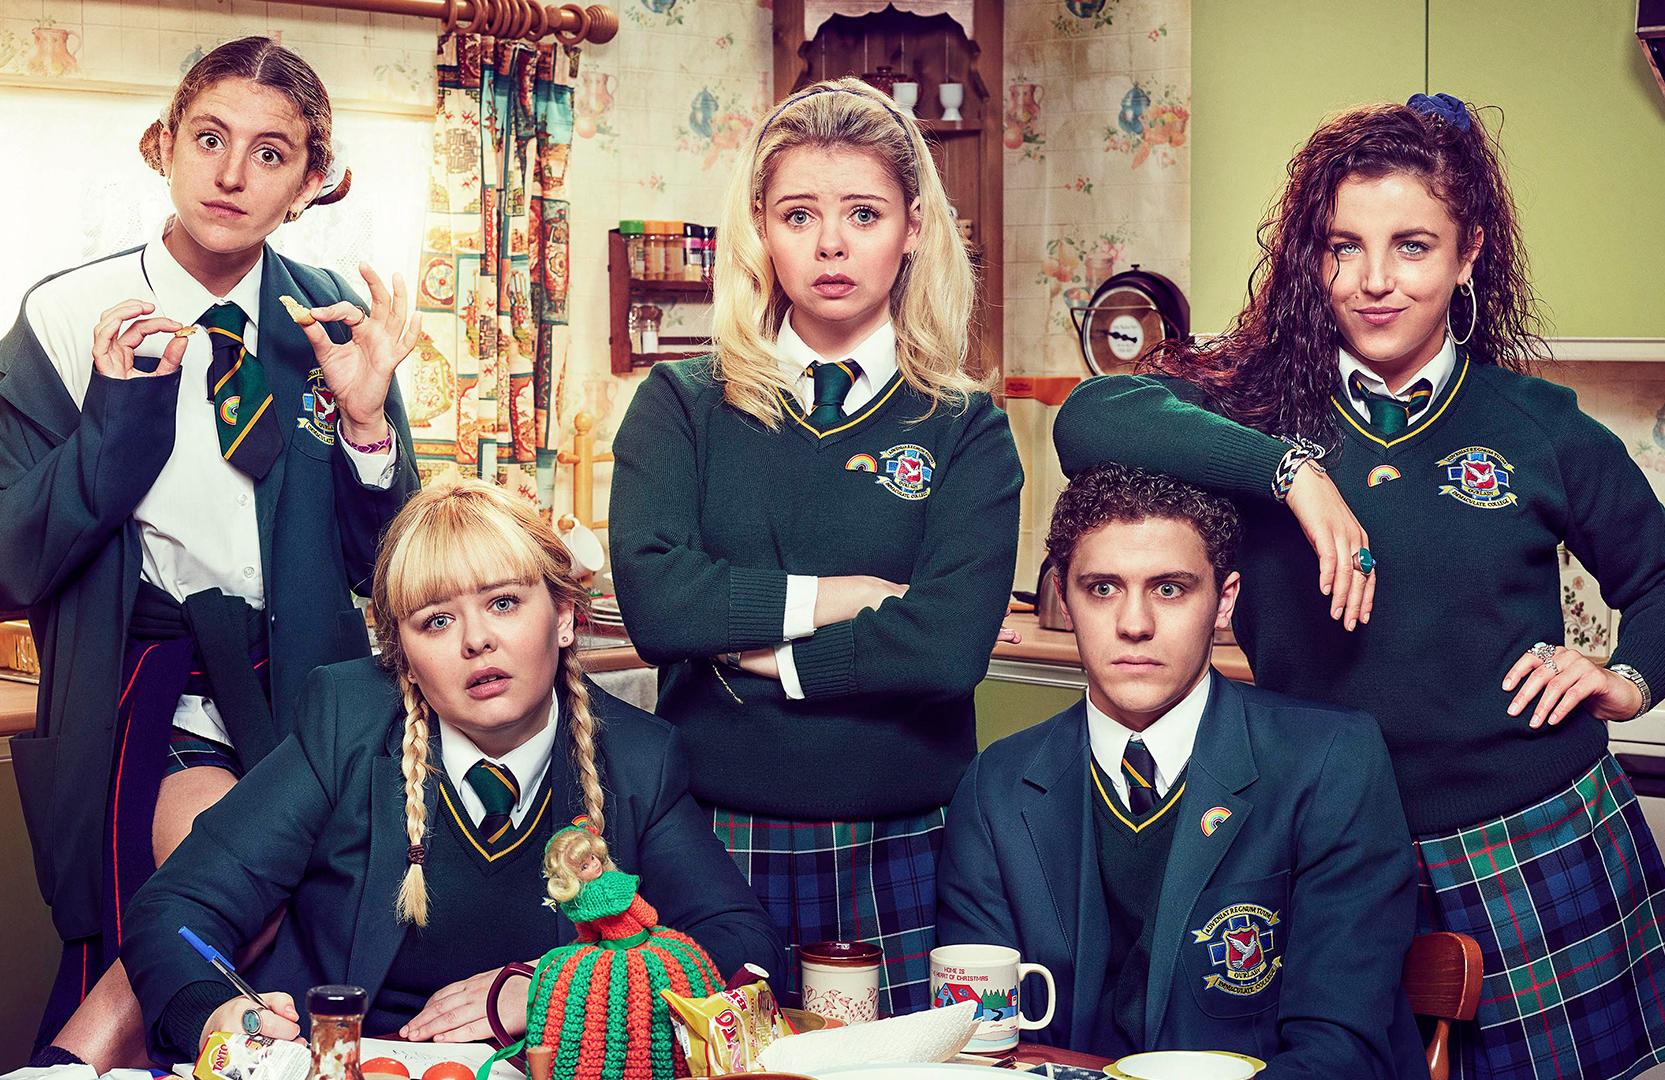 Left to right, Orla (Louisa Harland), Clare (Nicola Coughlan), Erin (Saoirse-Monica Jackson), James (Dylan Llewellyn), and Michelle (Jamie-Lee O'Donnell) in Derry Girls (Channel 4/Netflix)